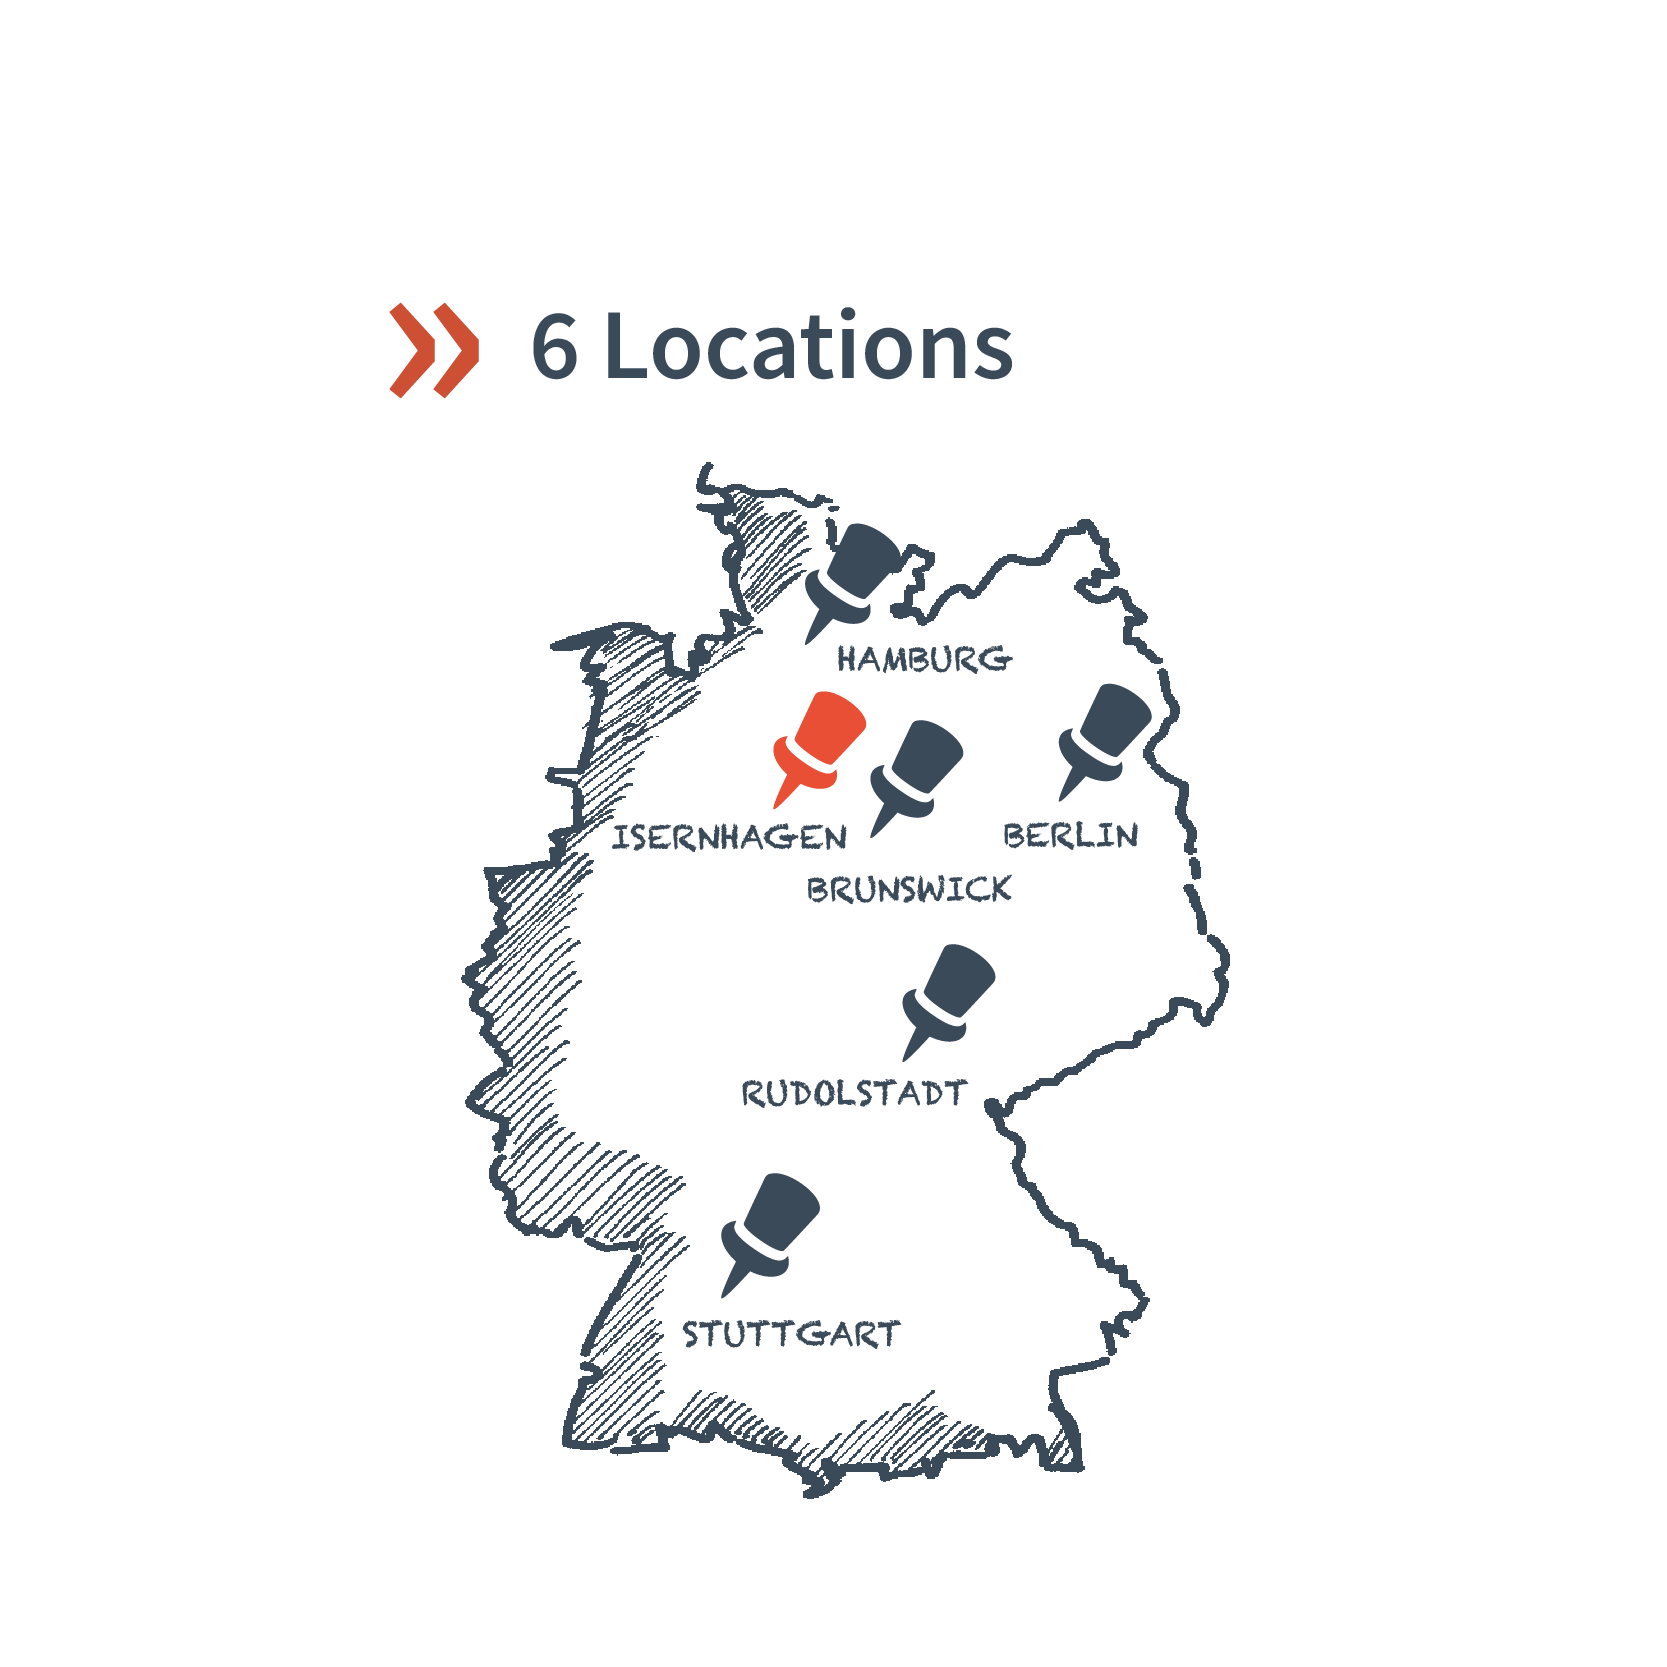 6 Locations and Sites in Germany